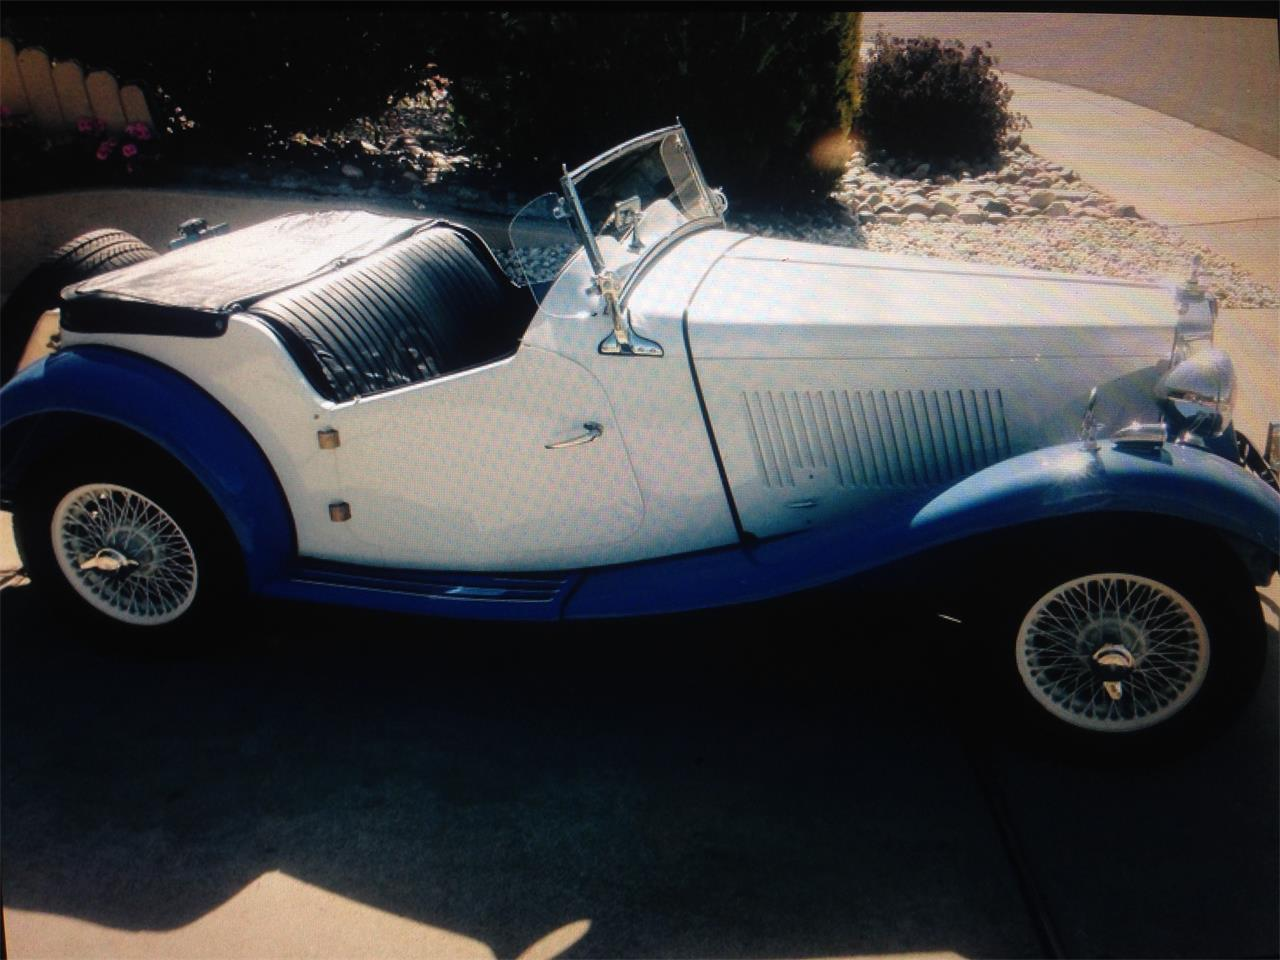 Large Picture of 1952 MG TD located in Antioch California - $18,888.00 - FTY3